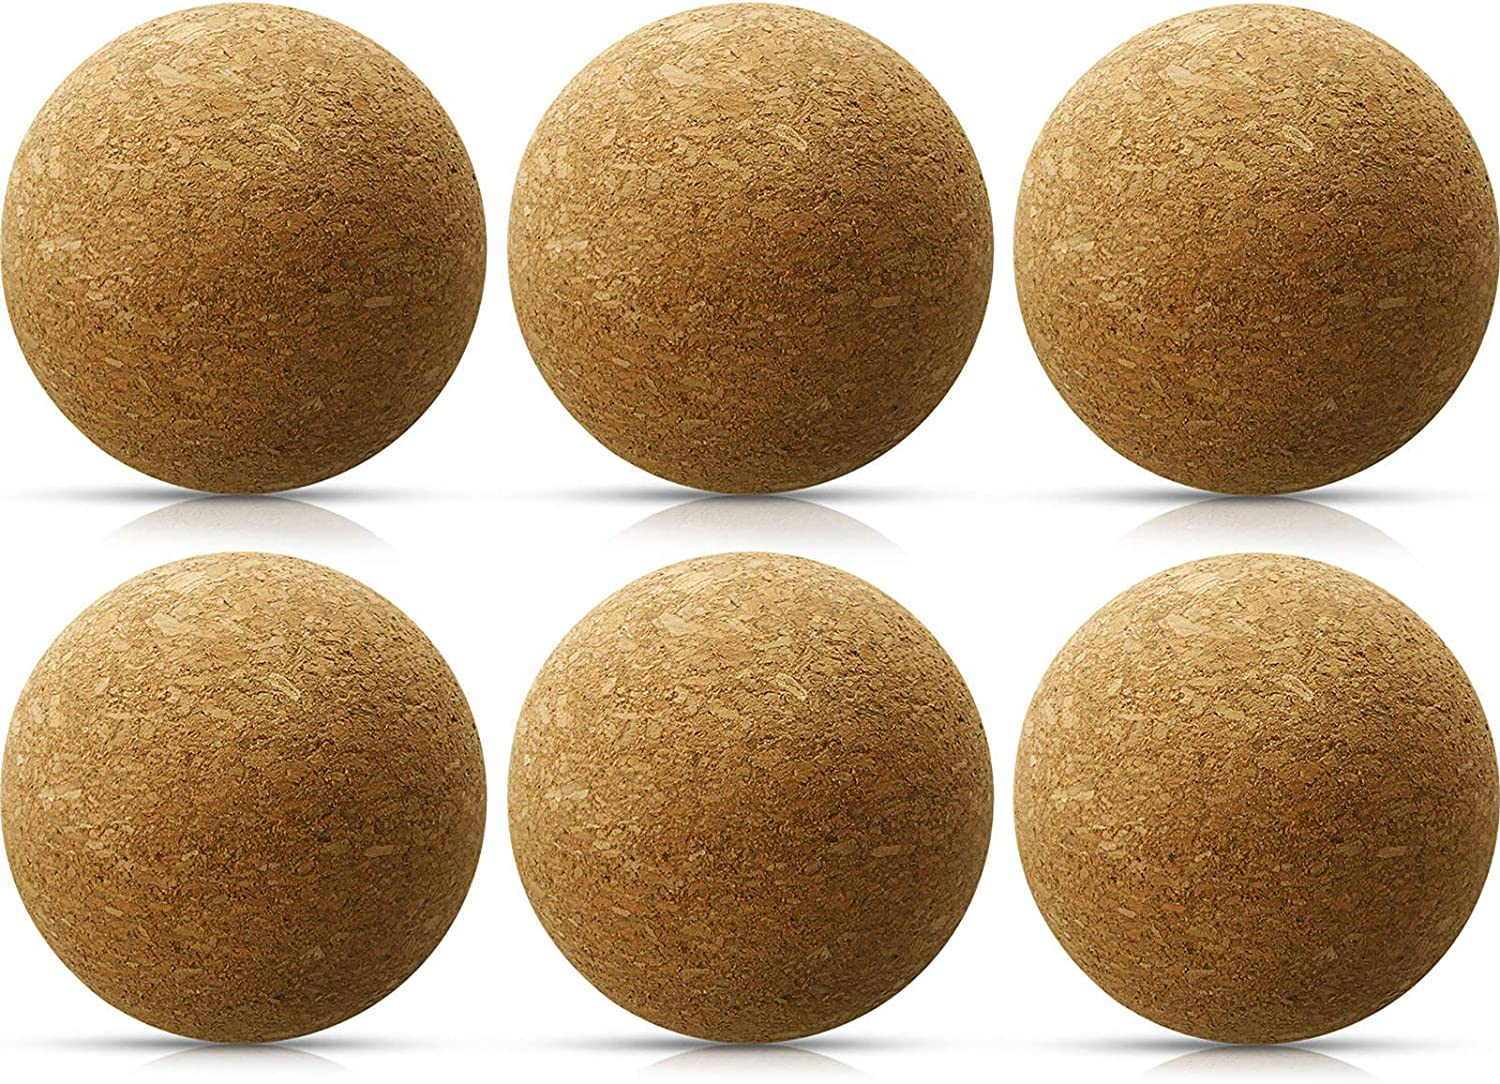 2 inches Ball Cork Package of 10 Replacement for Wine Decanter Wood Round Ball Cork Stopper